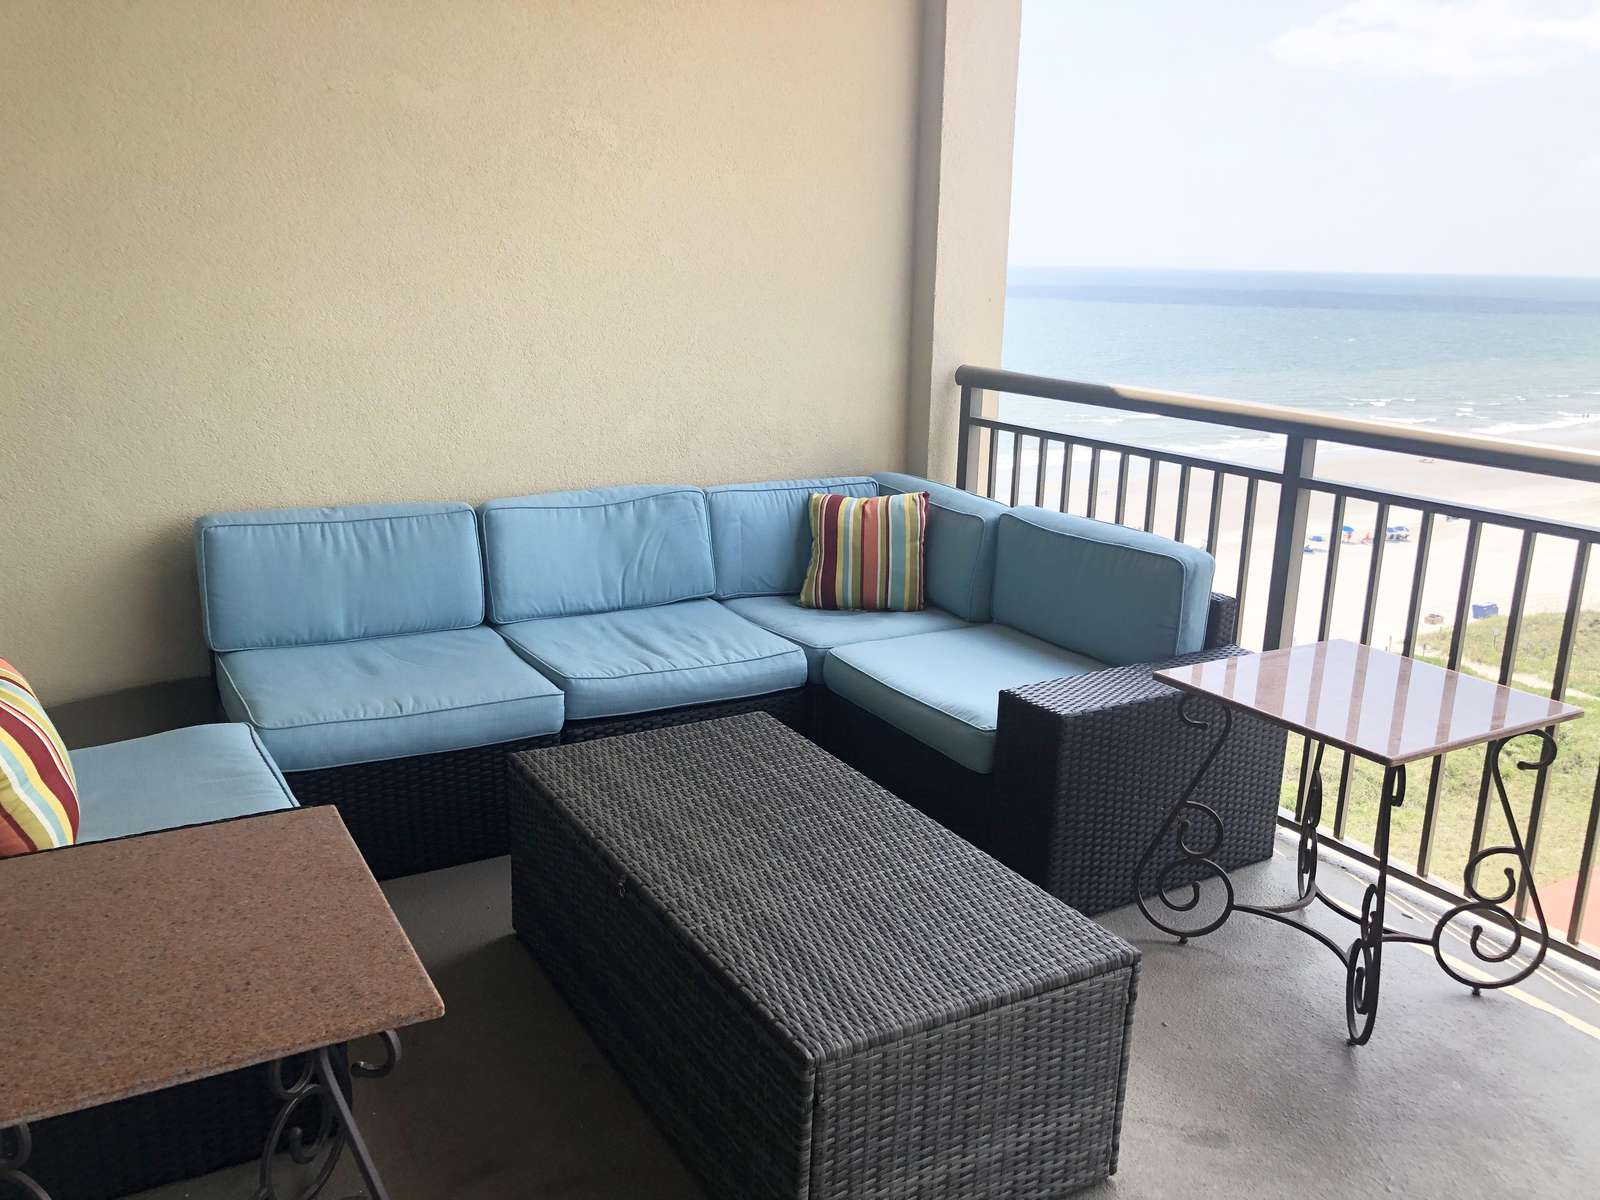 Brand new balcony furniture